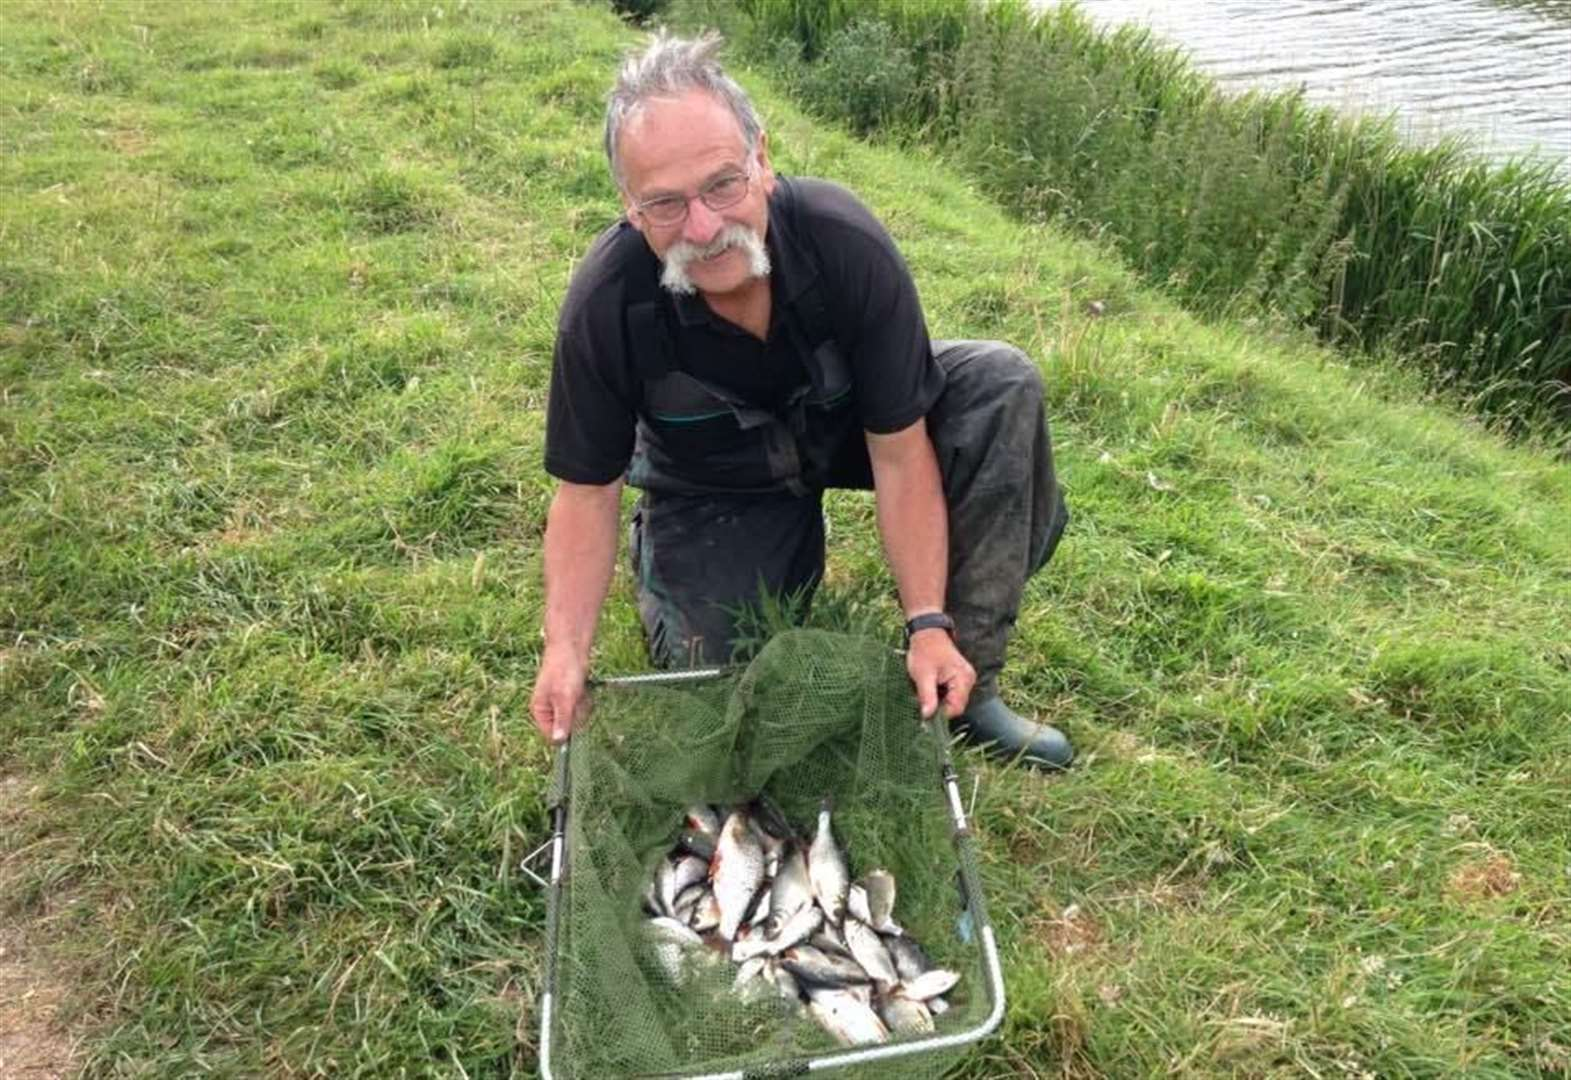 Angling: Twenty Foot Drain at March sees big catches headed by Graham Welton who beats Phil McFadden and rod legend Bob Nudd